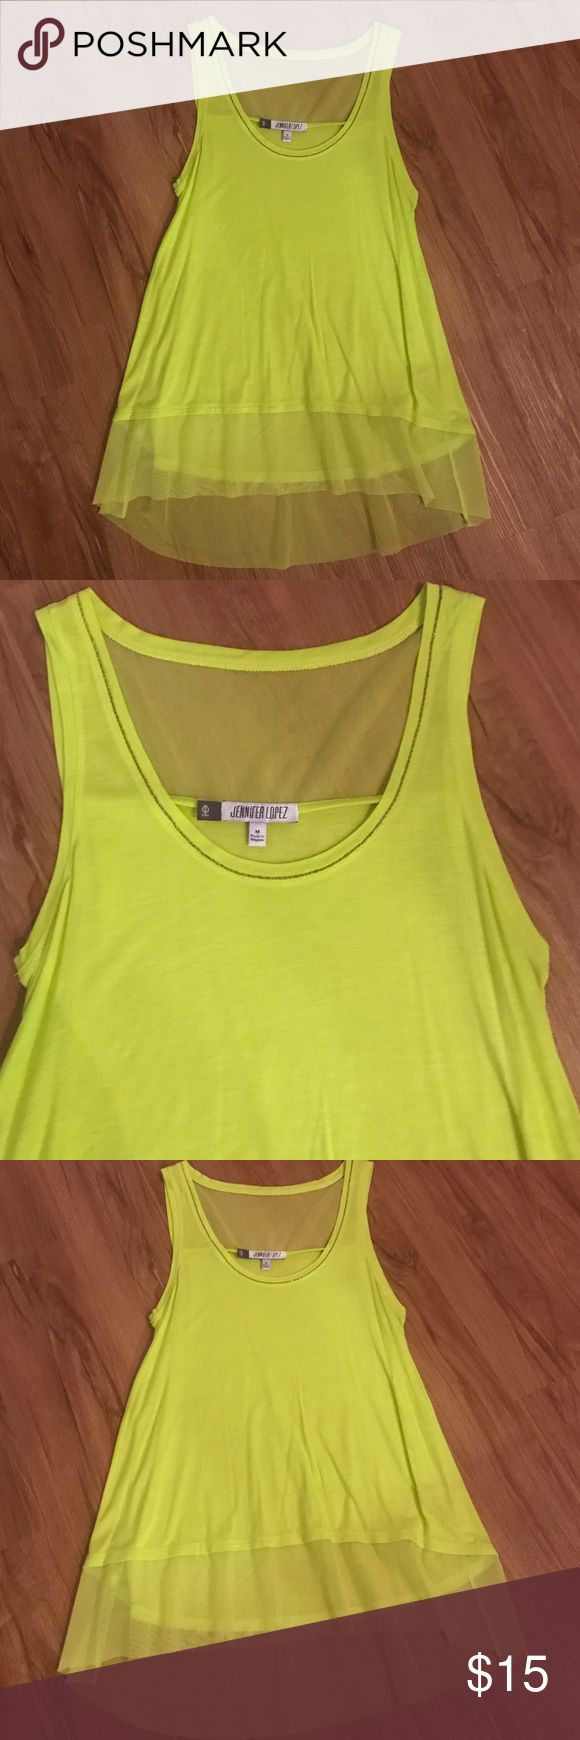 Neon Green Solid and Mesh Tank Top Jennifer Lopez Neon Green Tank Top, never worn! NEW condition. Great for upcoming festival season! Jennifer Lopez Tops Tank Tops